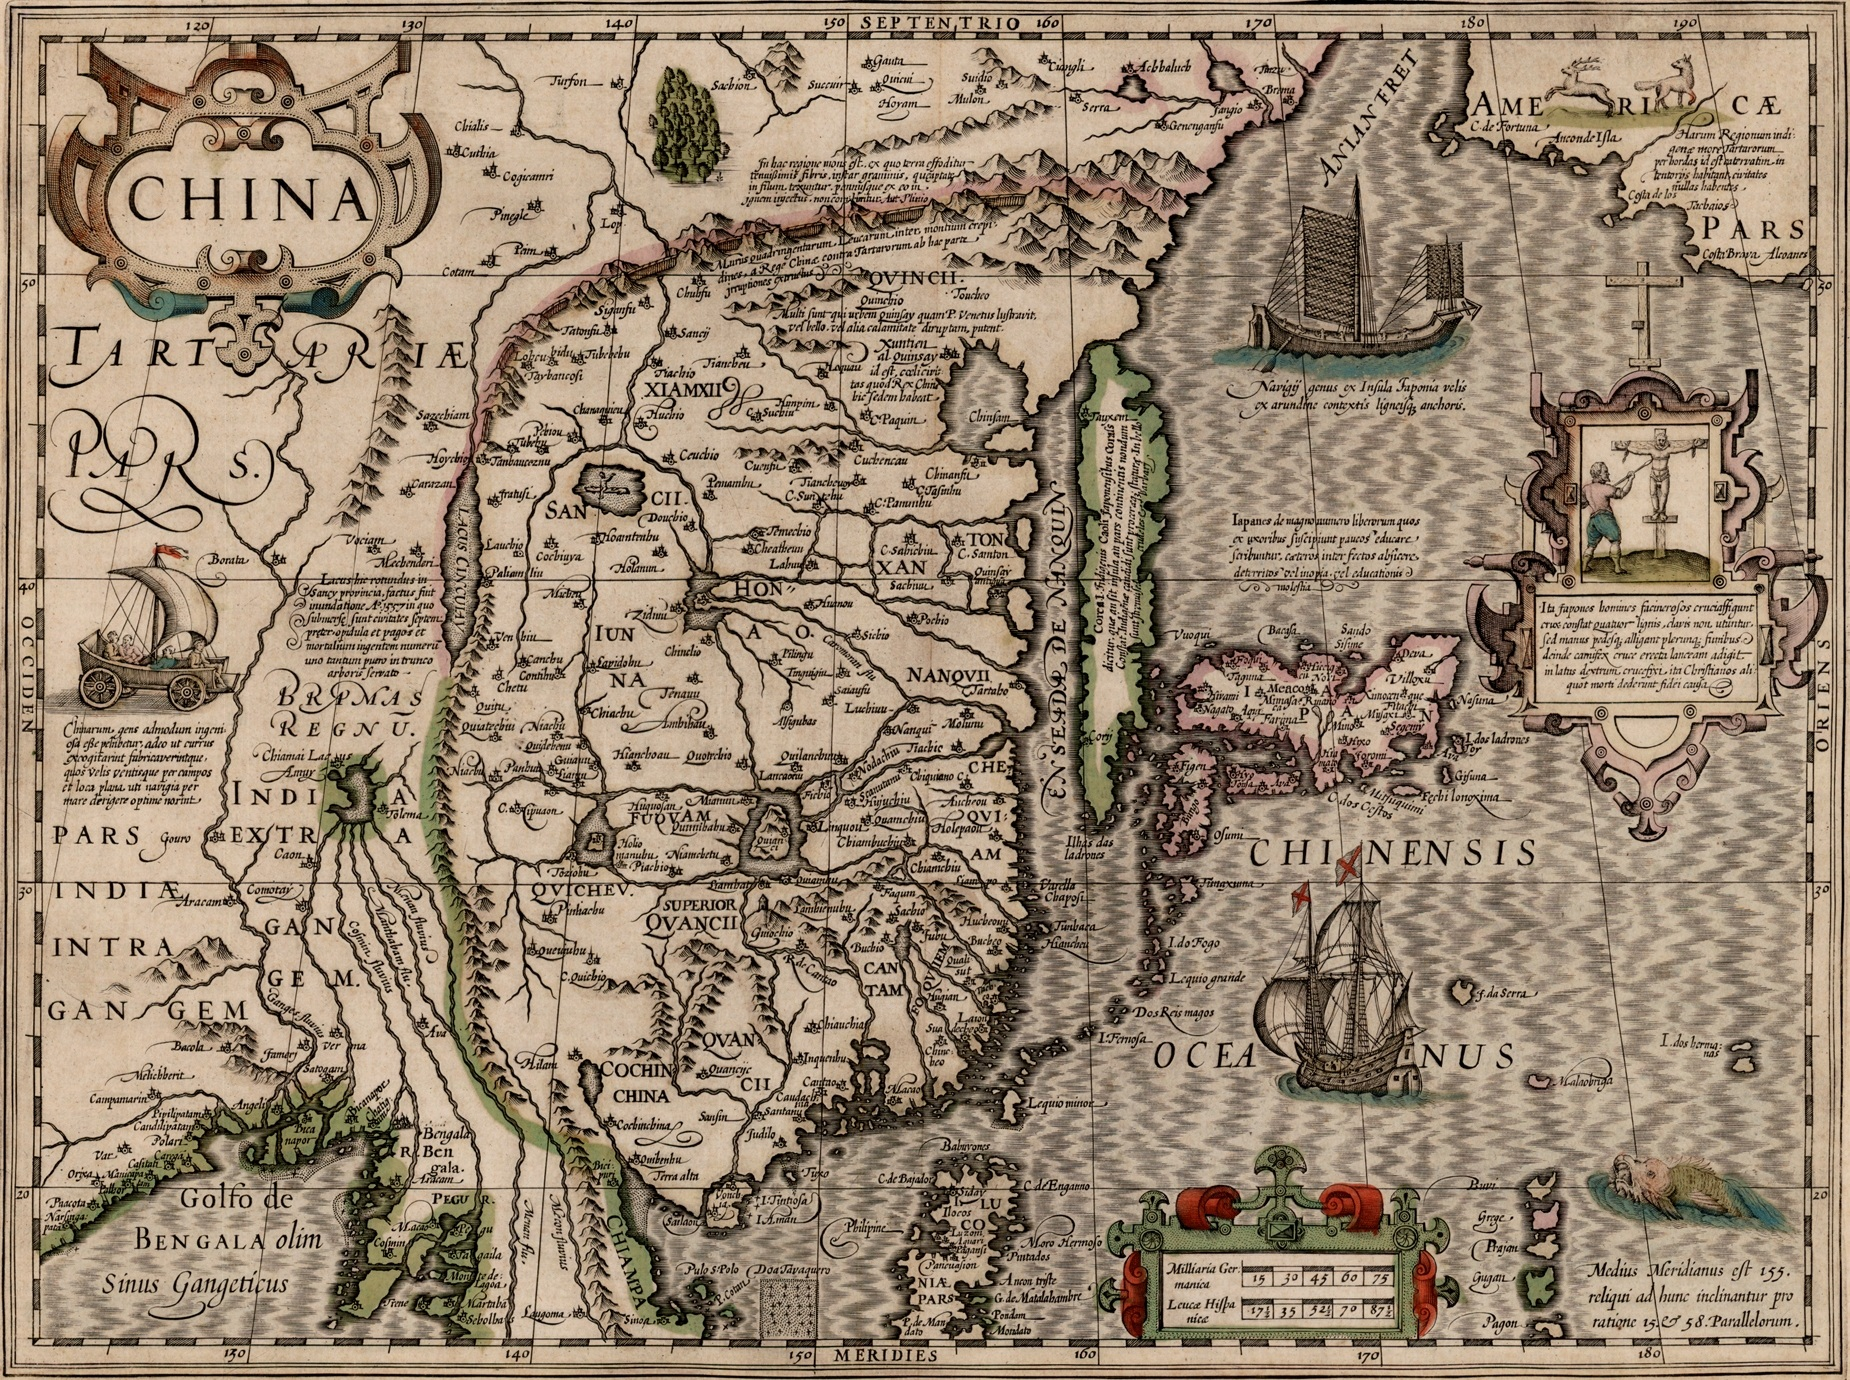 Photo of Jodocus Hondius, map titled China (ca. 1606)